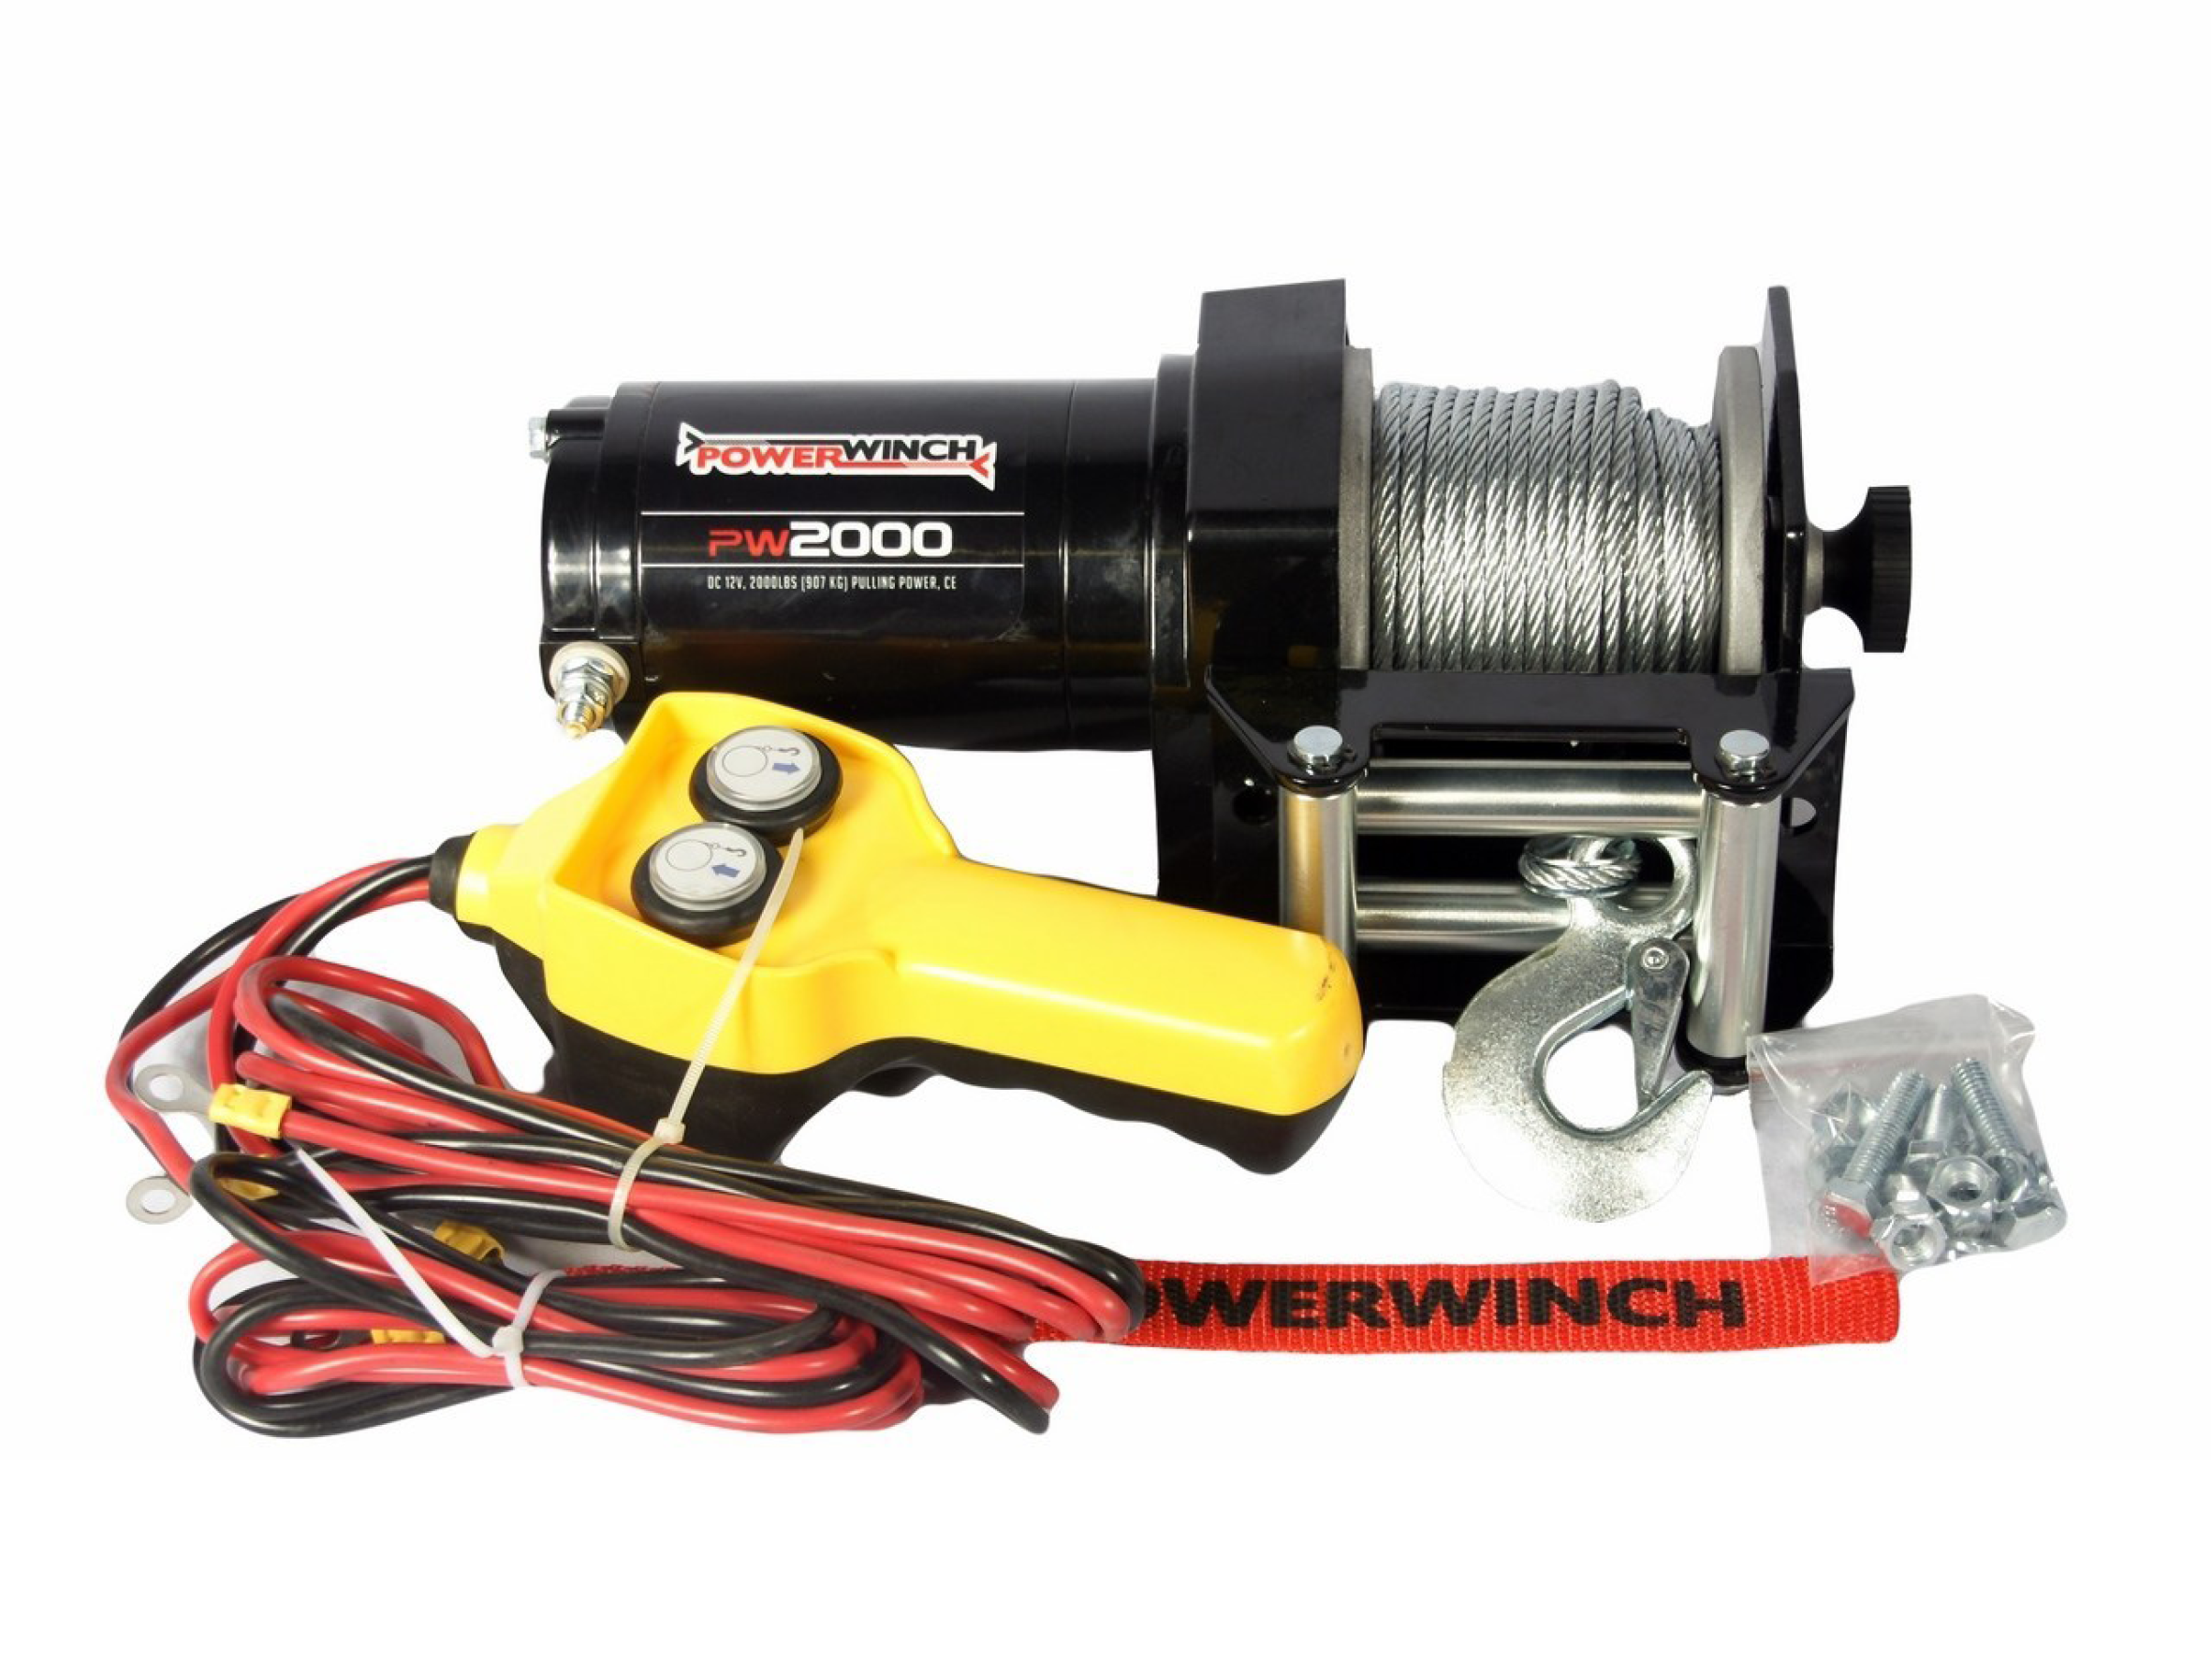 Powerwinch PW2000 Electric winch with wire cable